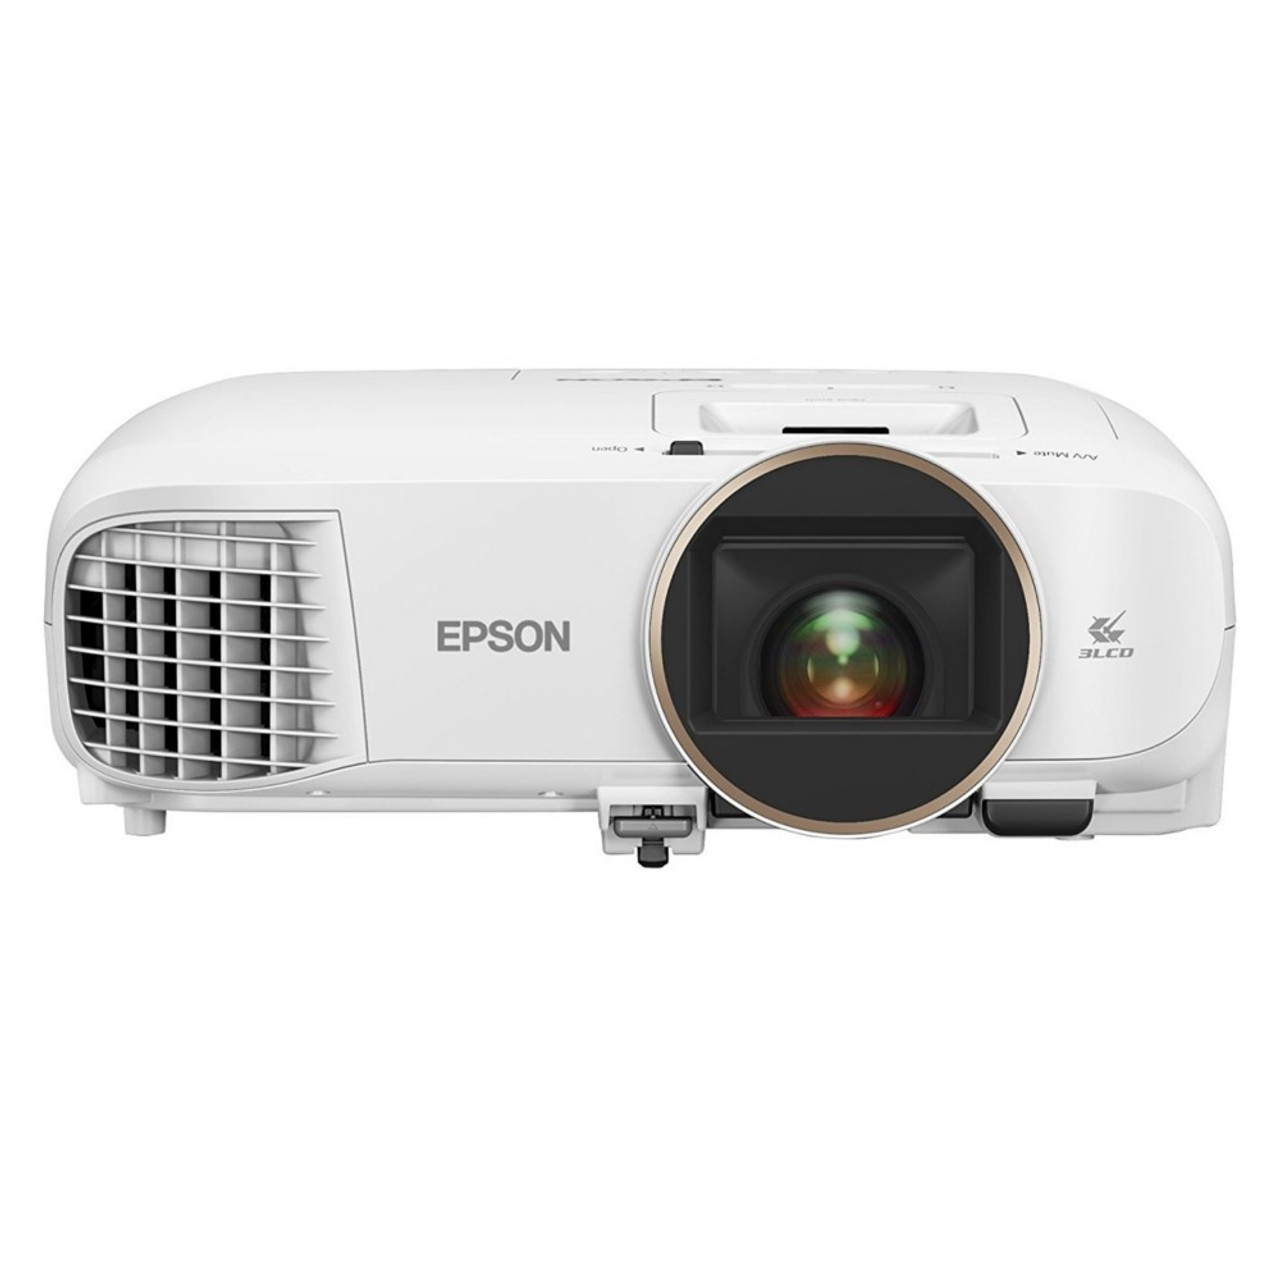 Epson EH-TW5600 2500 Lumens Full HD 3D Home Theatre LCD Projector